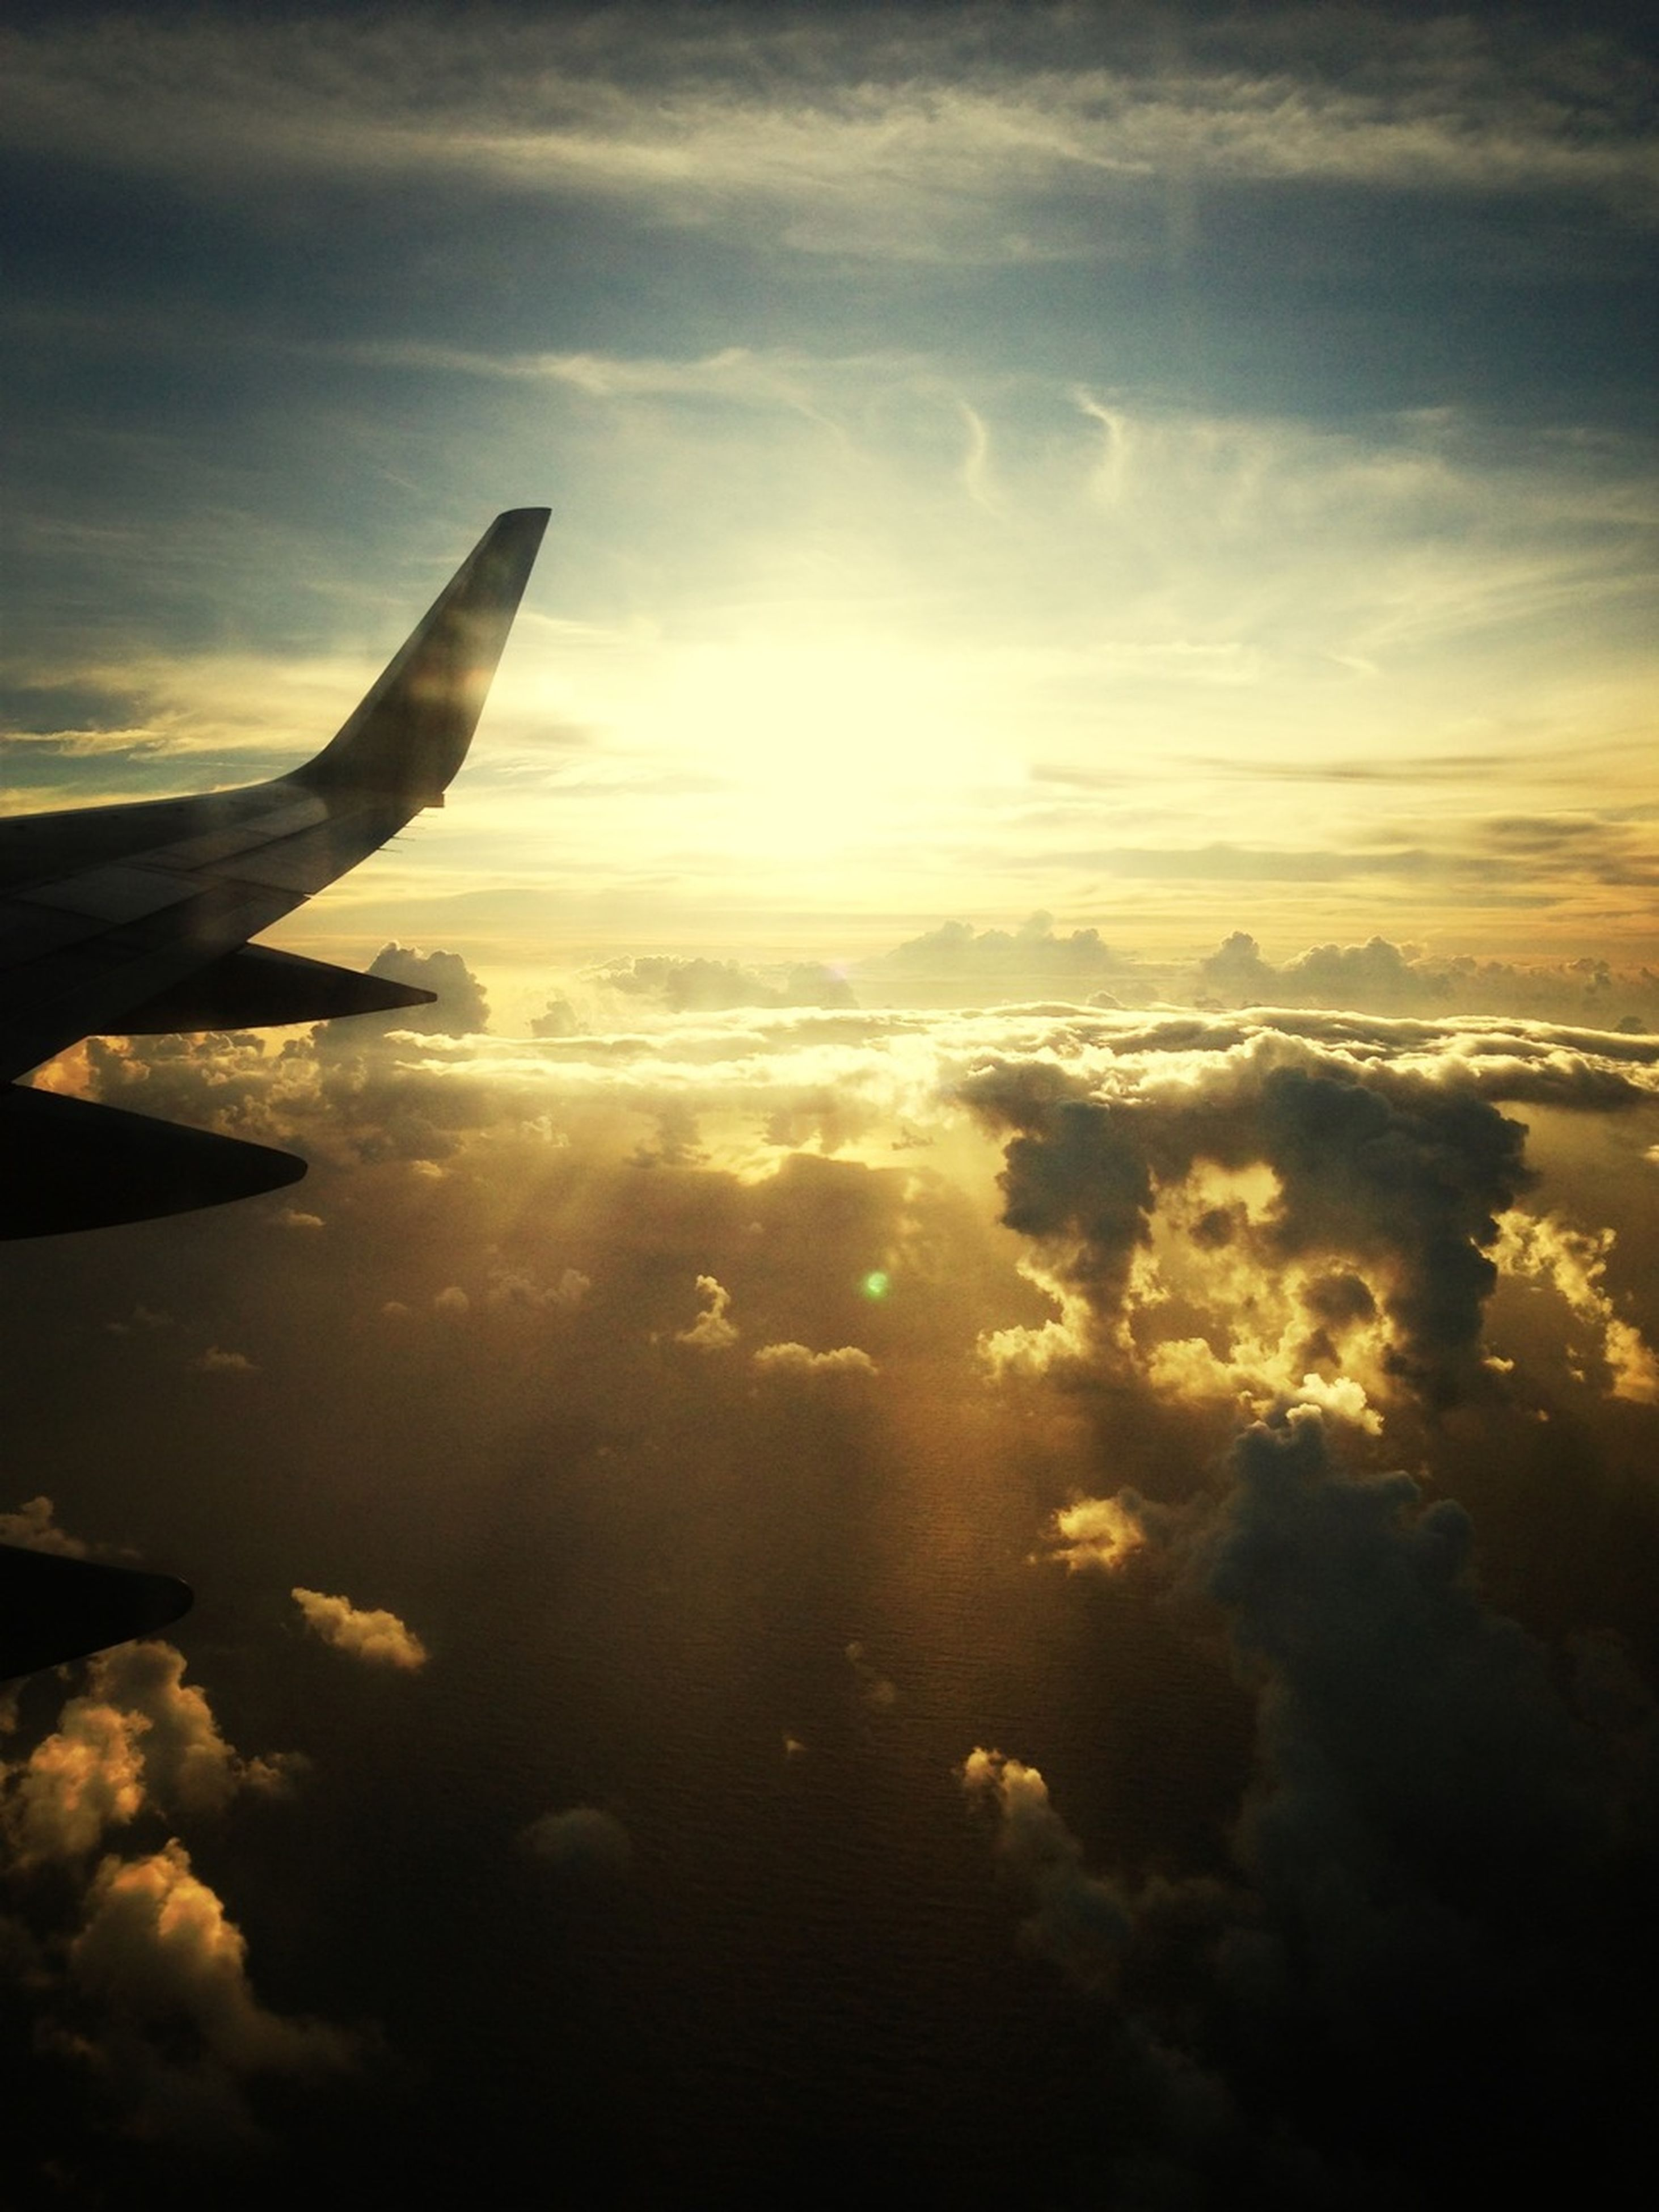 flying, sky, beauty in nature, scenics, cloud - sky, airplane, aerial view, aircraft wing, part of, sunset, nature, tranquil scene, cropped, air vehicle, mid-air, tranquility, cloudscape, transportation, cloud, sea